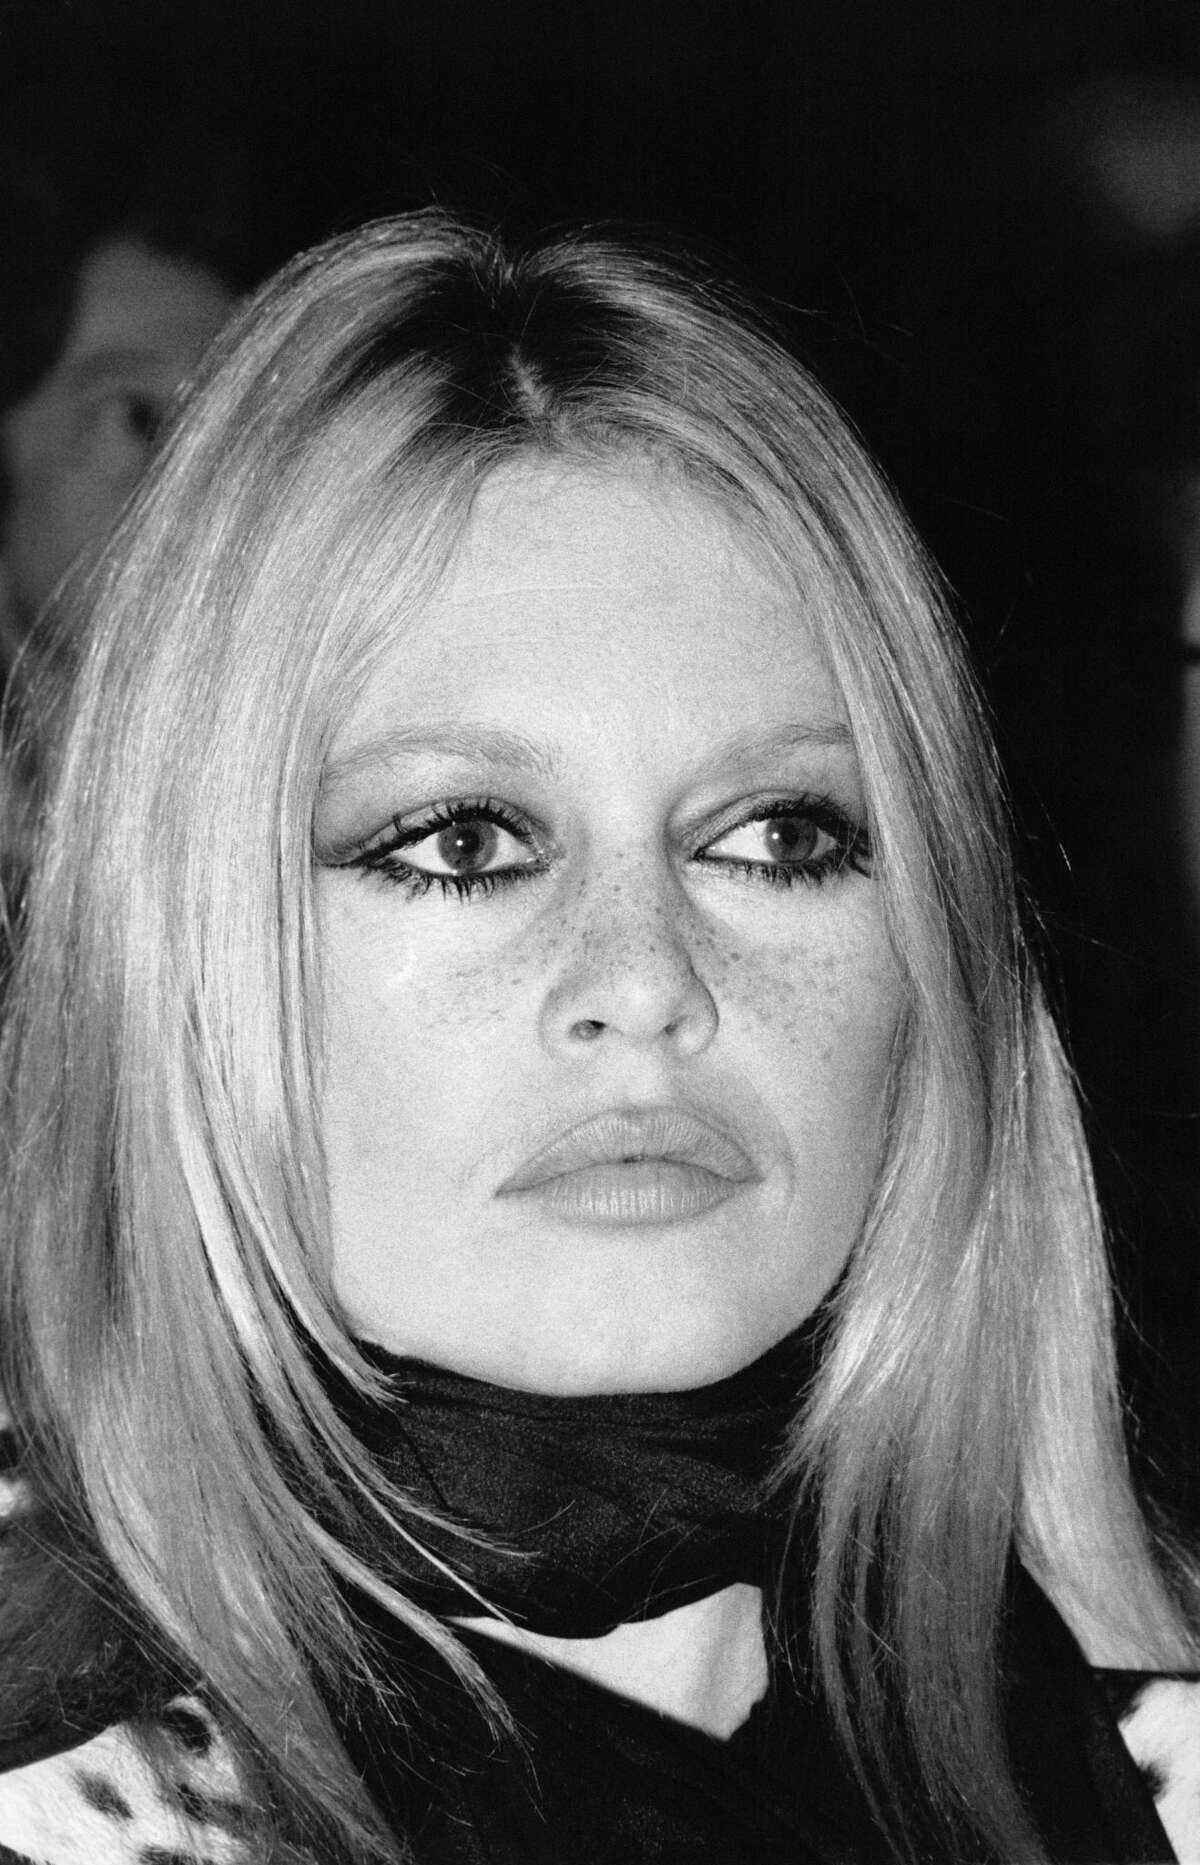 Brigitte Bardot, circa 1960 in France. (Photo by REPORTERS ASSOCIES/Gamma-Rapho via Getty Images)